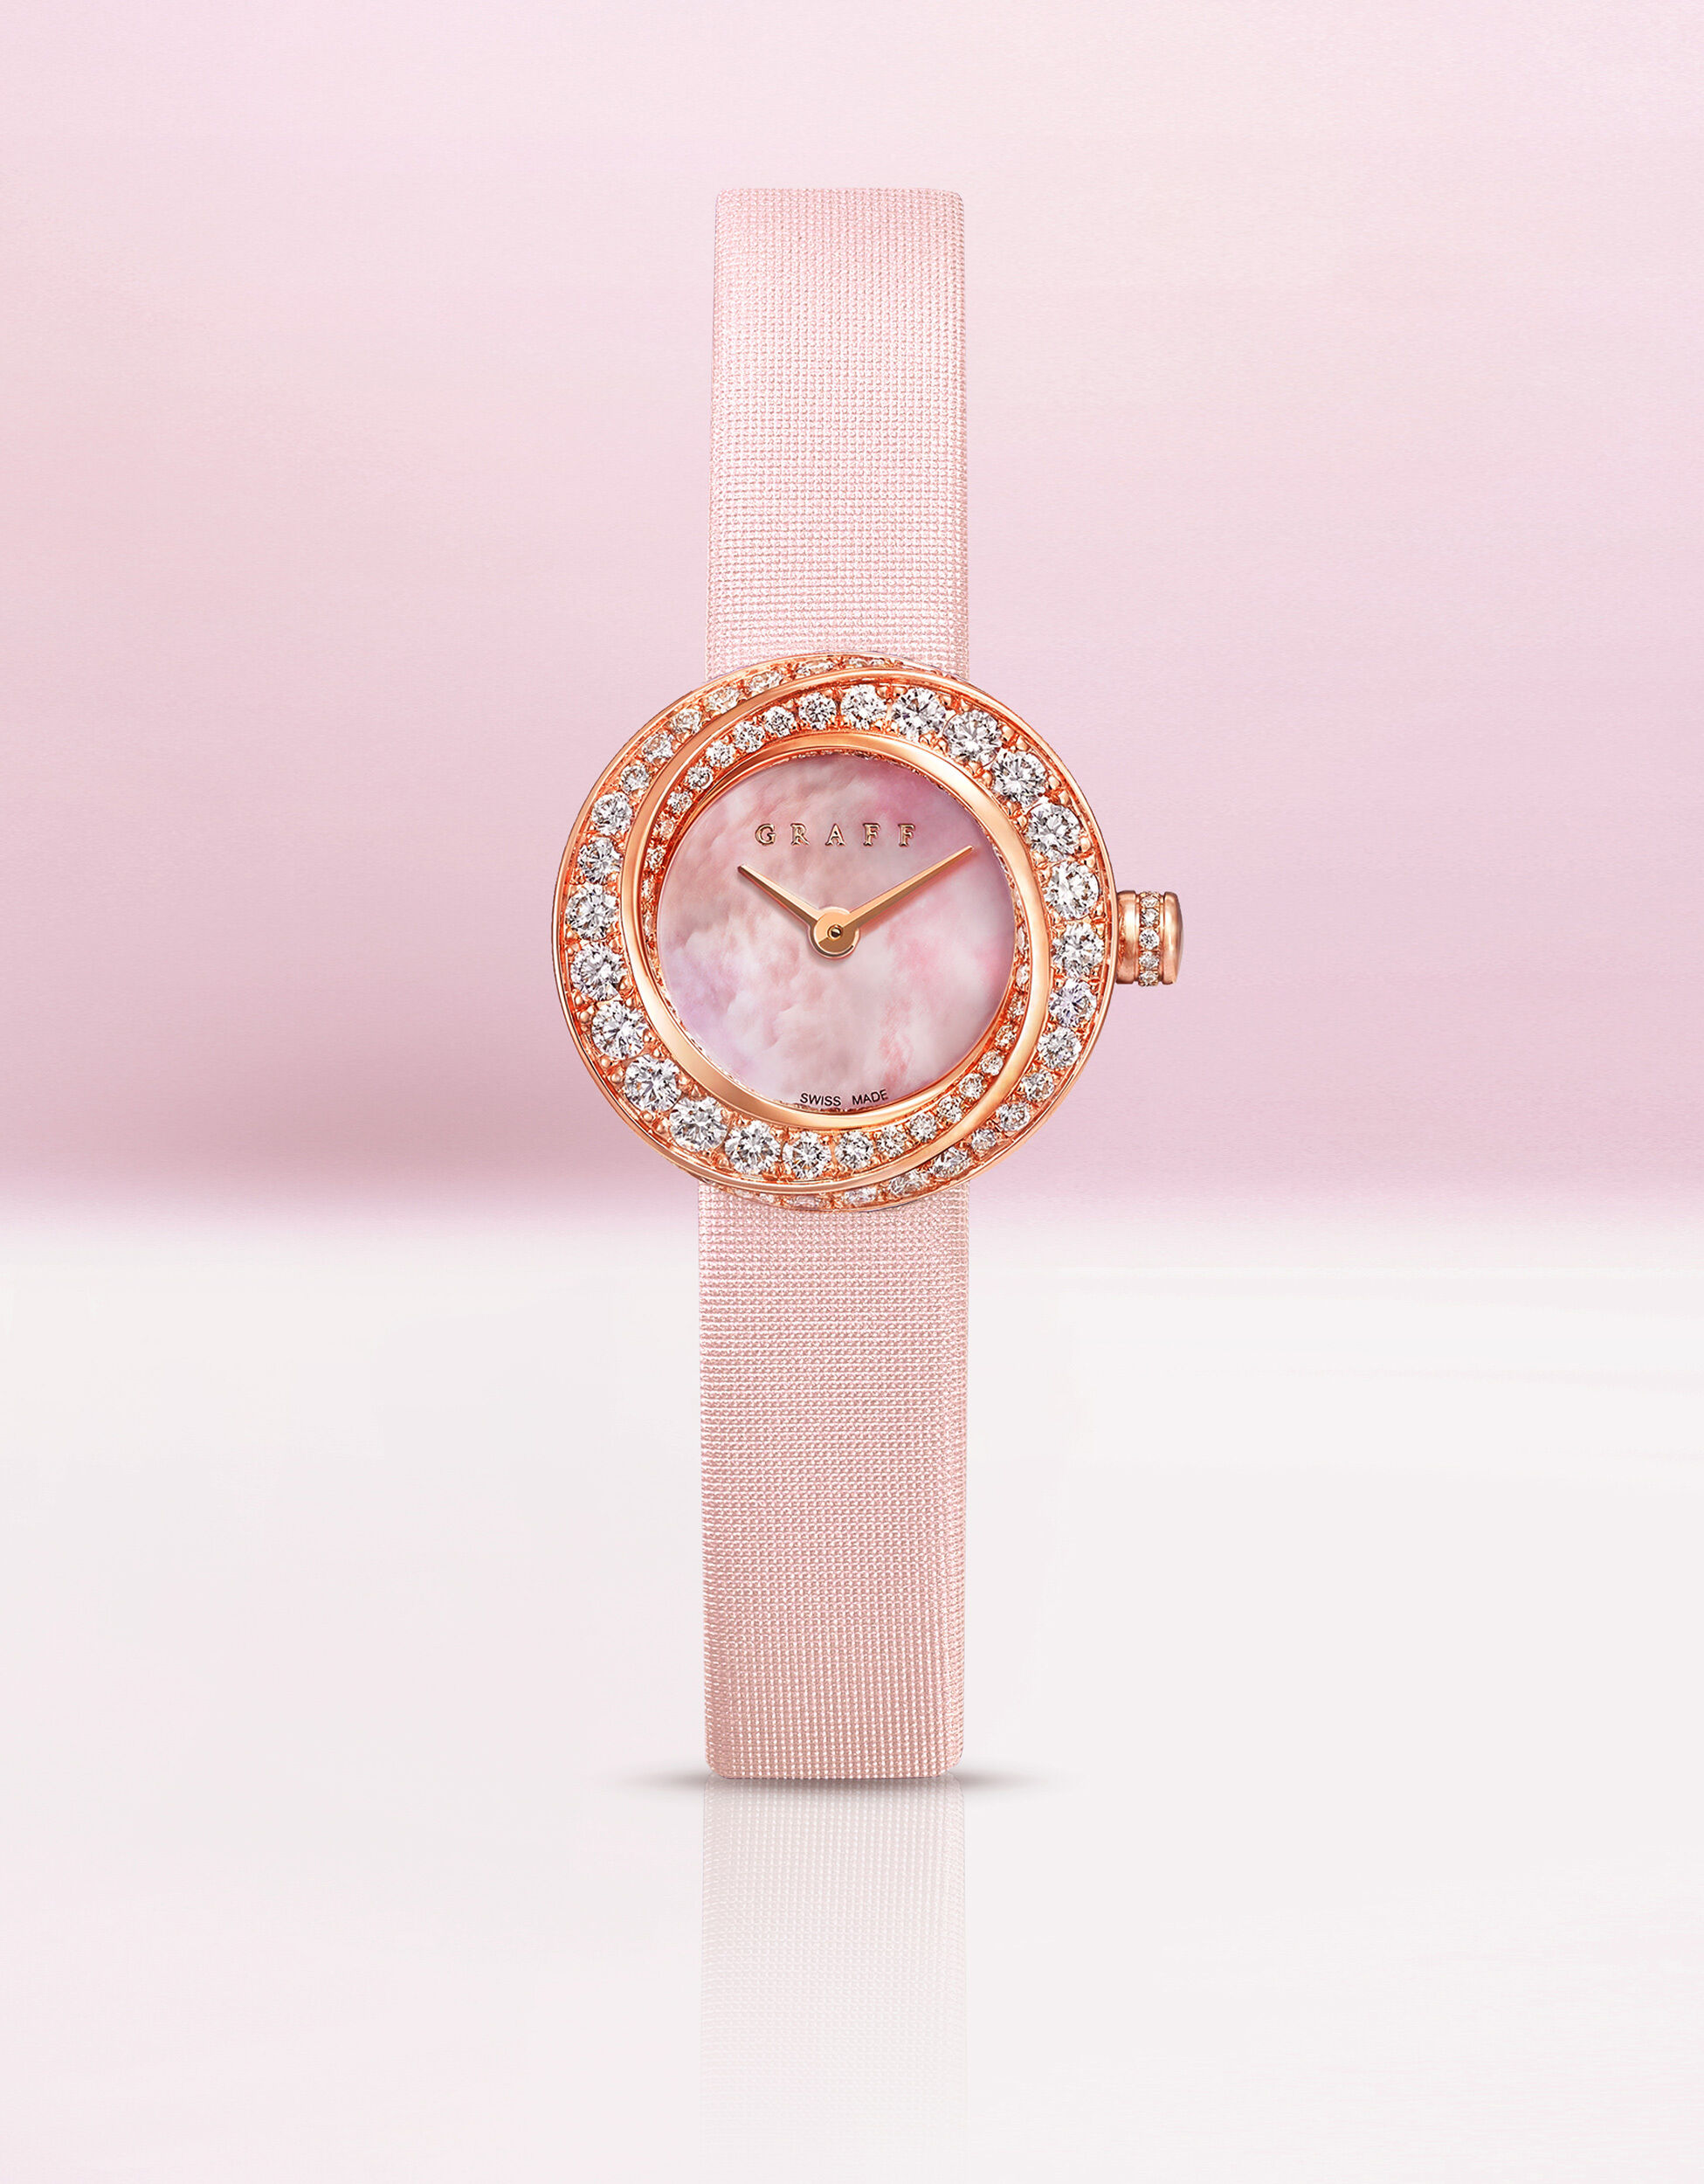 Image of Graff Spiral watch with pink satin strap, pink mother of pearl, rose gold and diamonds